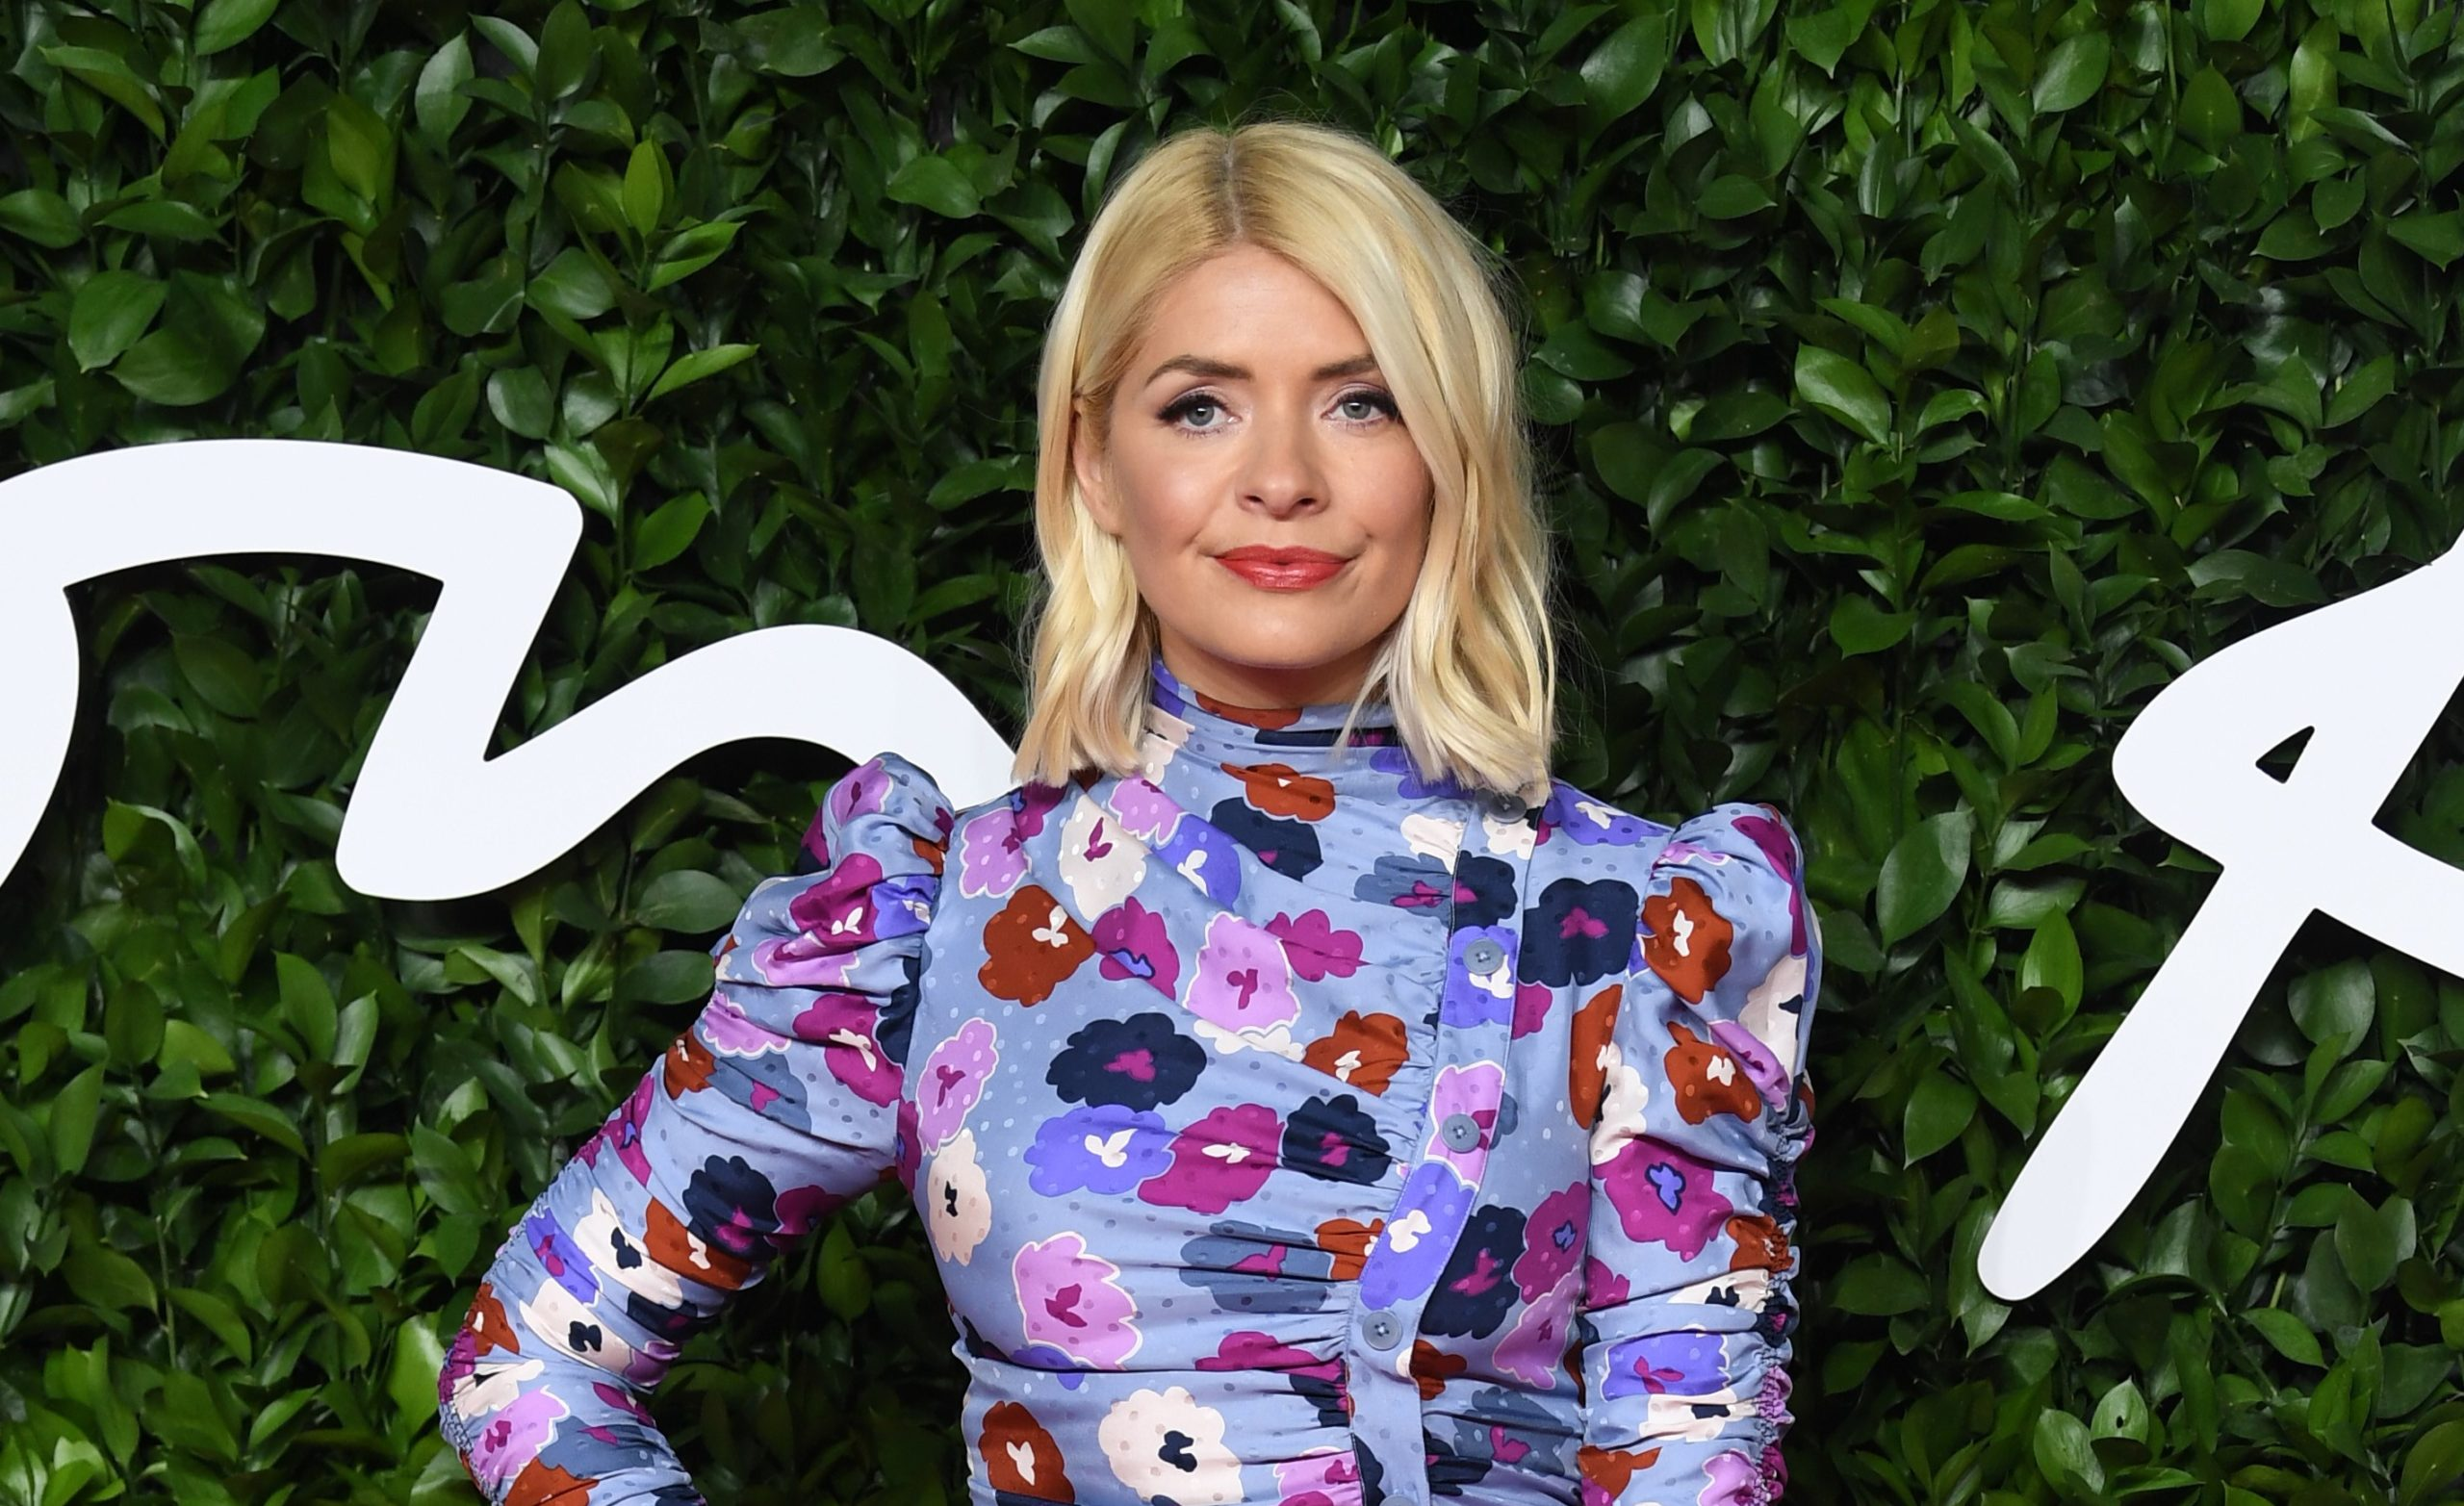 Holly Willoughby shares adorable picture of newborn niece